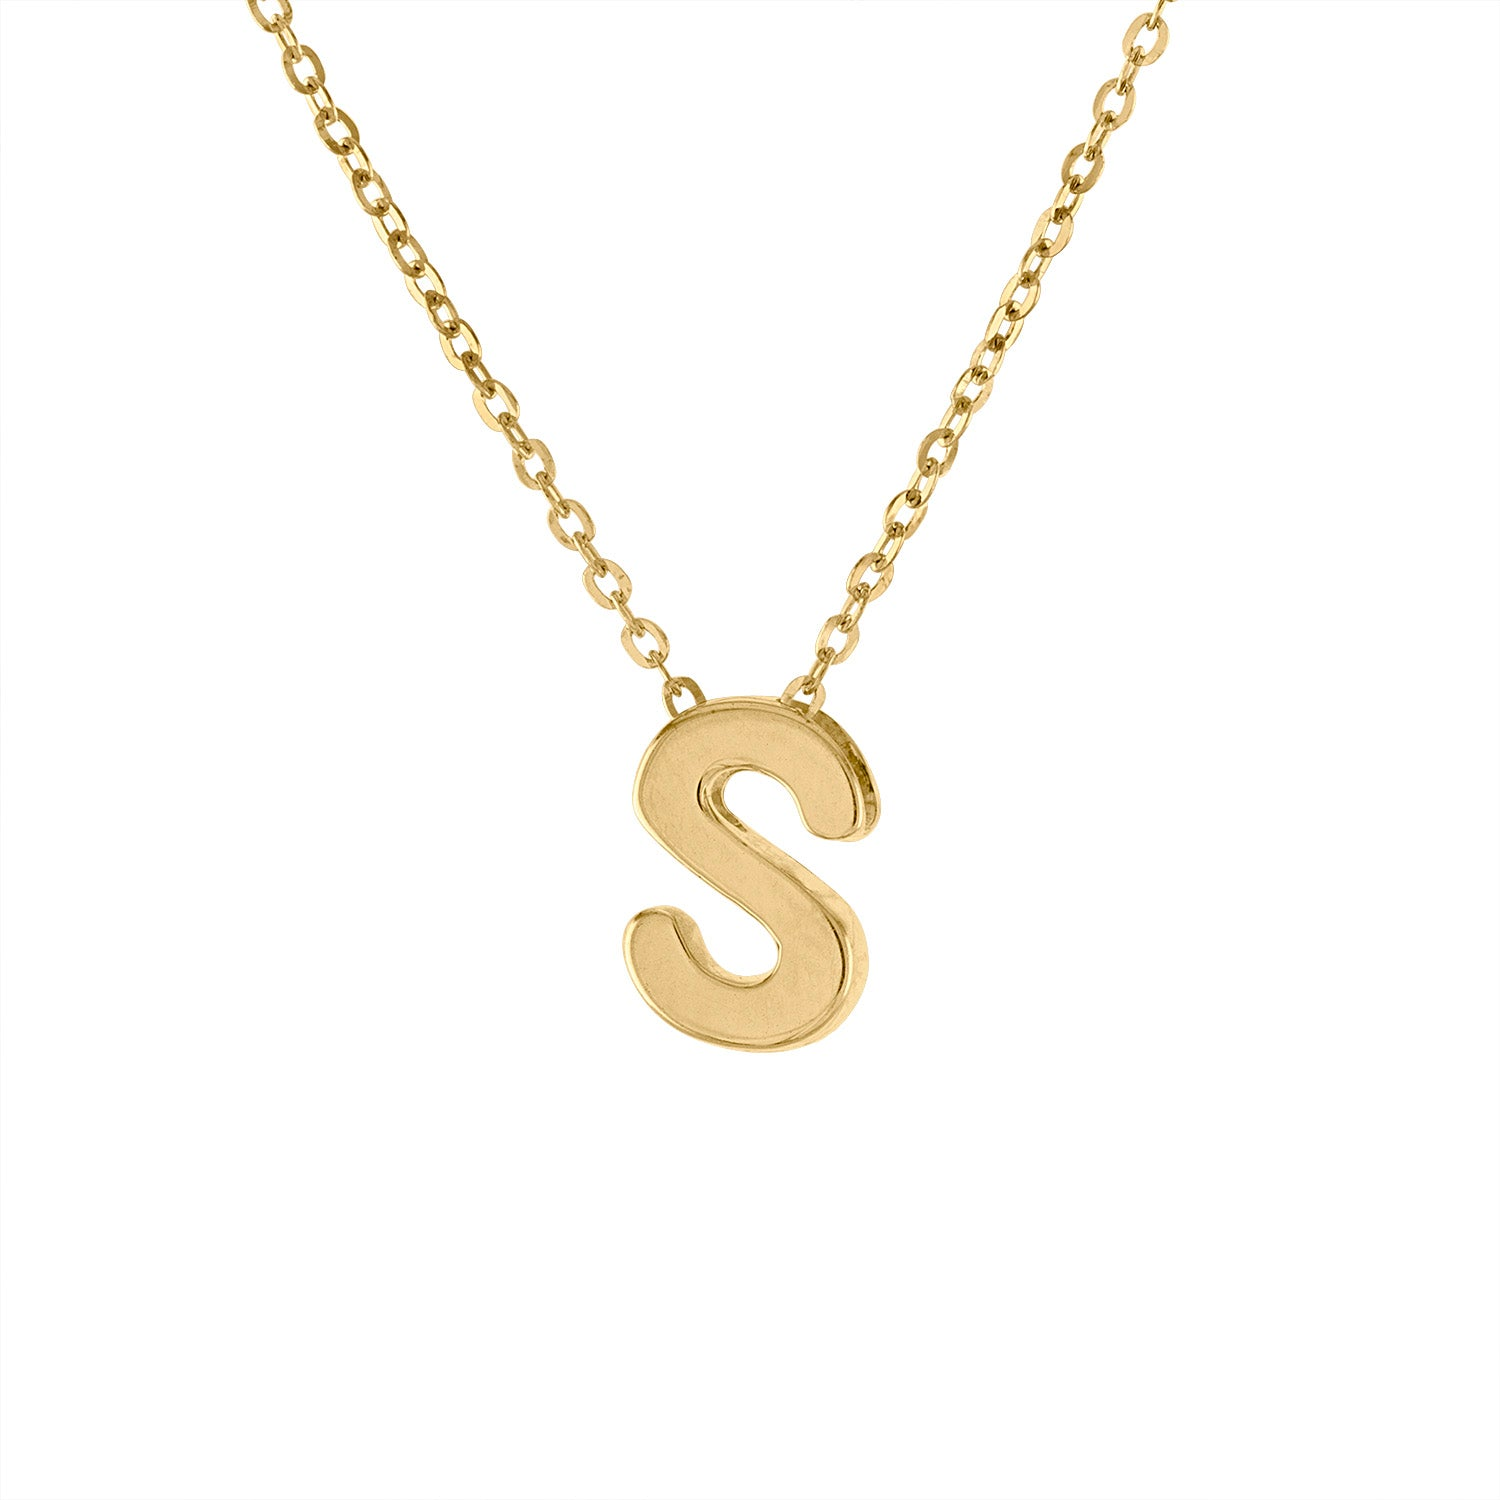 14k Yellow Gold plain initial S necklace